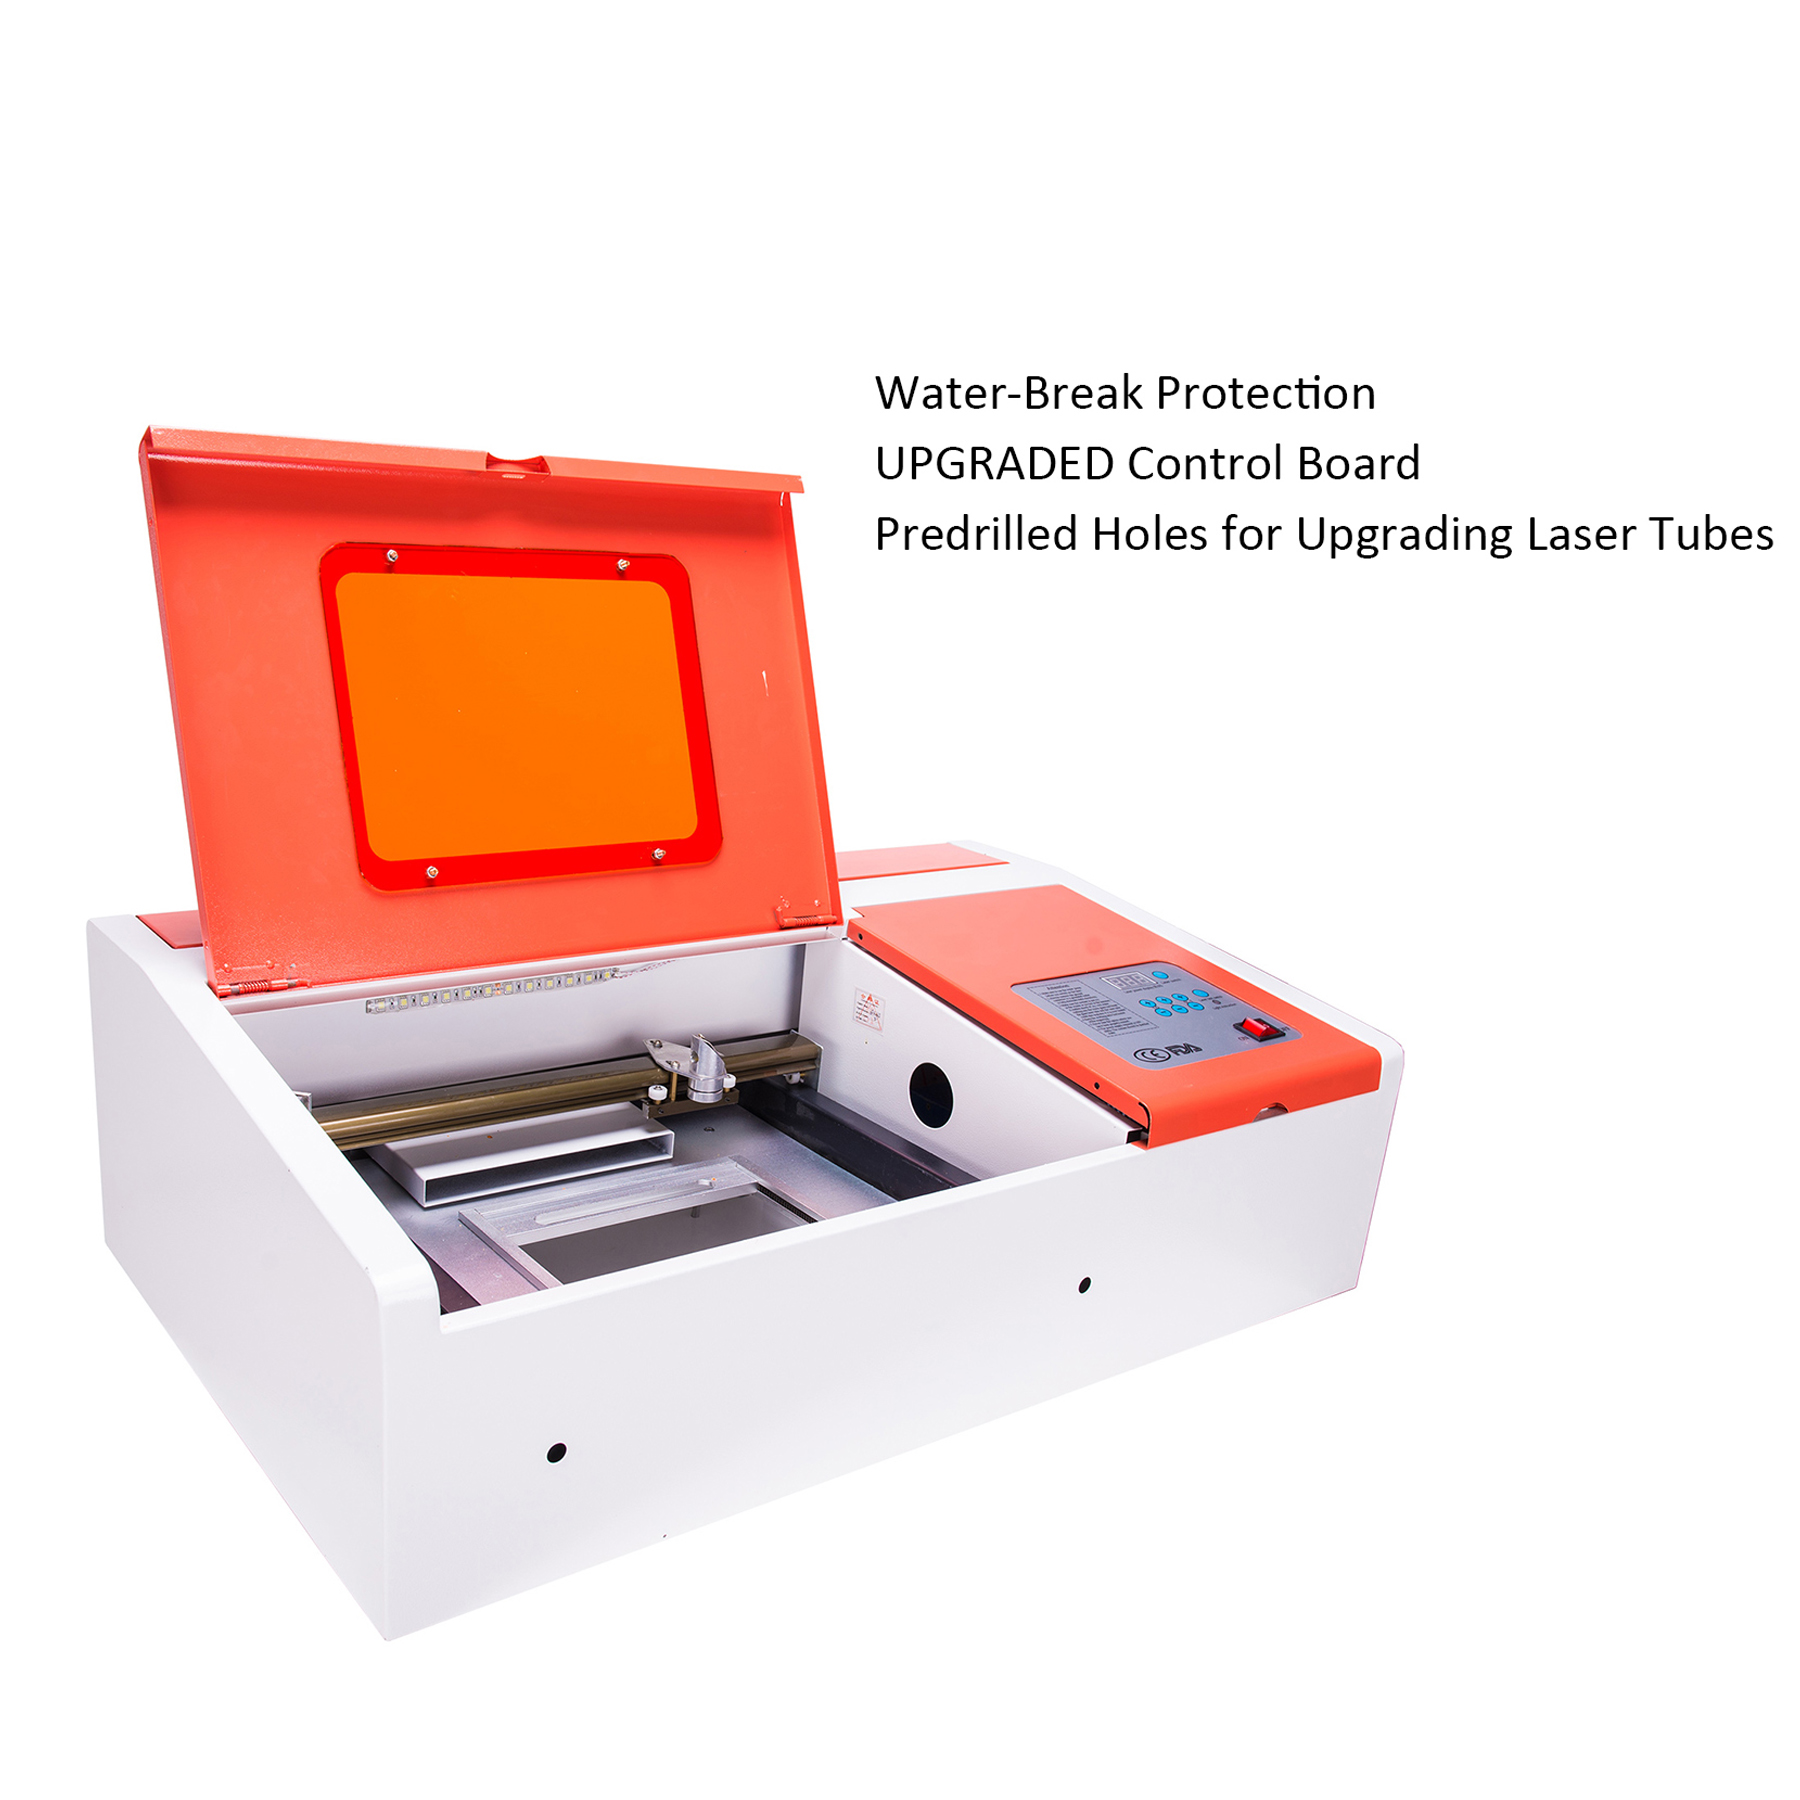 UPGRADED 40W CO2 Laser Engraver Engraving Machine Water-Break Protection USB